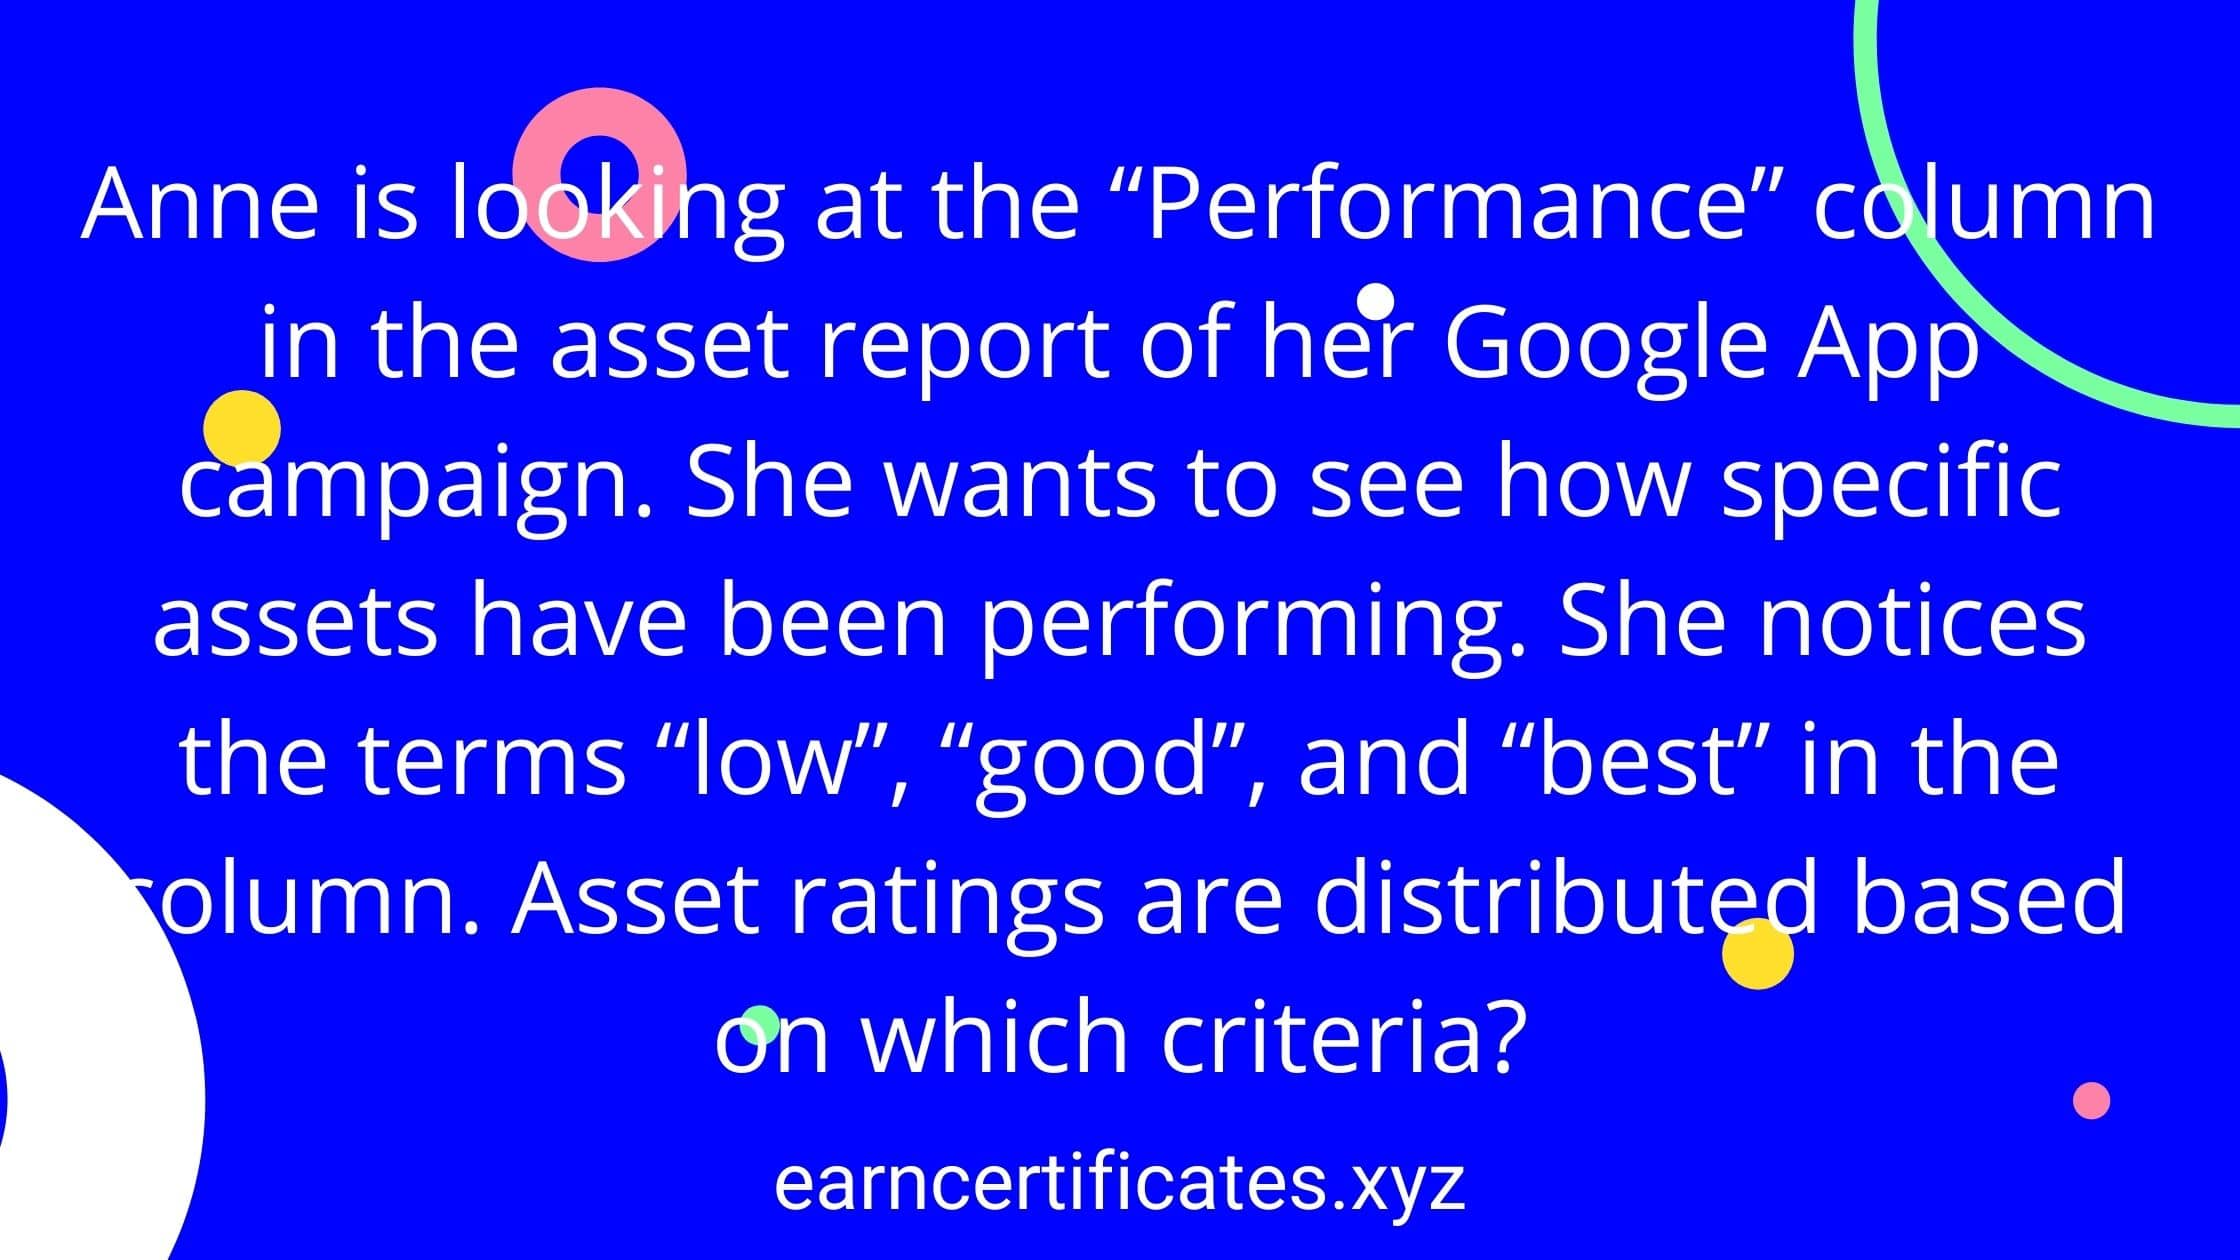 """Anne is looking at the """"Performance"""" column in the asset report of her Google App campaign. She wants to see how specific assets have been performing. She notices the terms """"low"""", """"good"""", and """"best"""" in the column. Asset ratings are distributed based on which criteria?"""